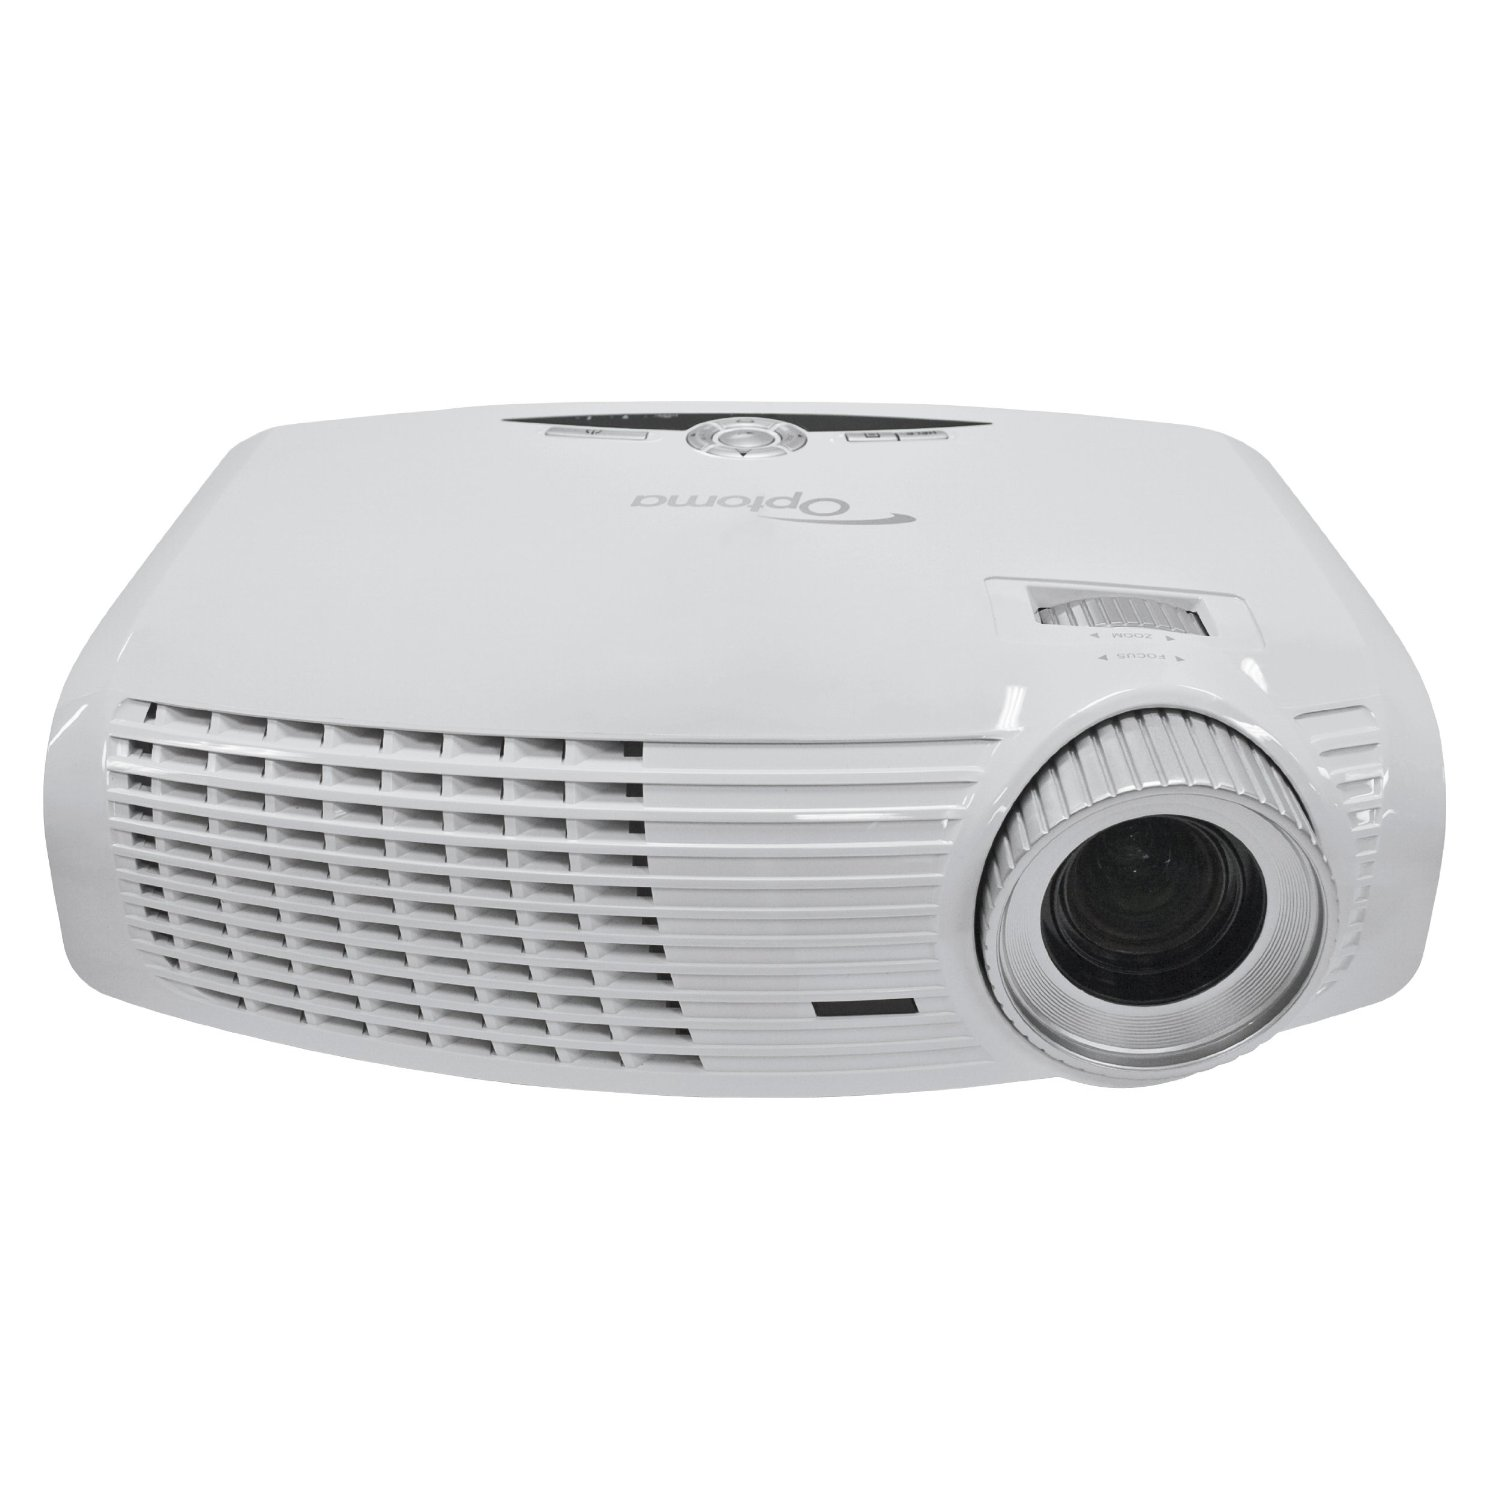 Mini wall best hd projector 1080p reviews optoma hd20 for Hd projector small